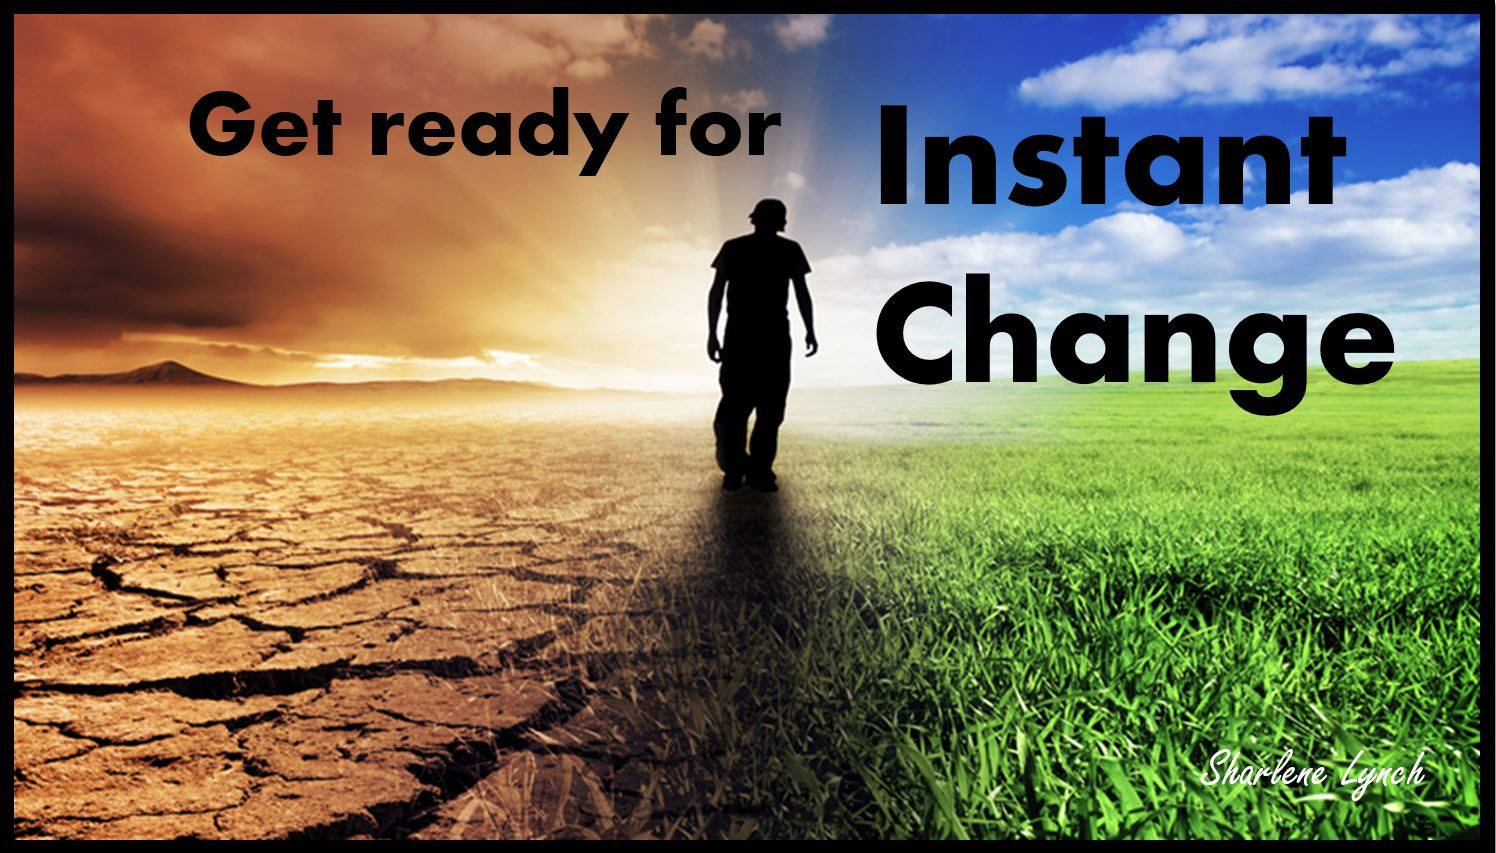 Get ready for instant change